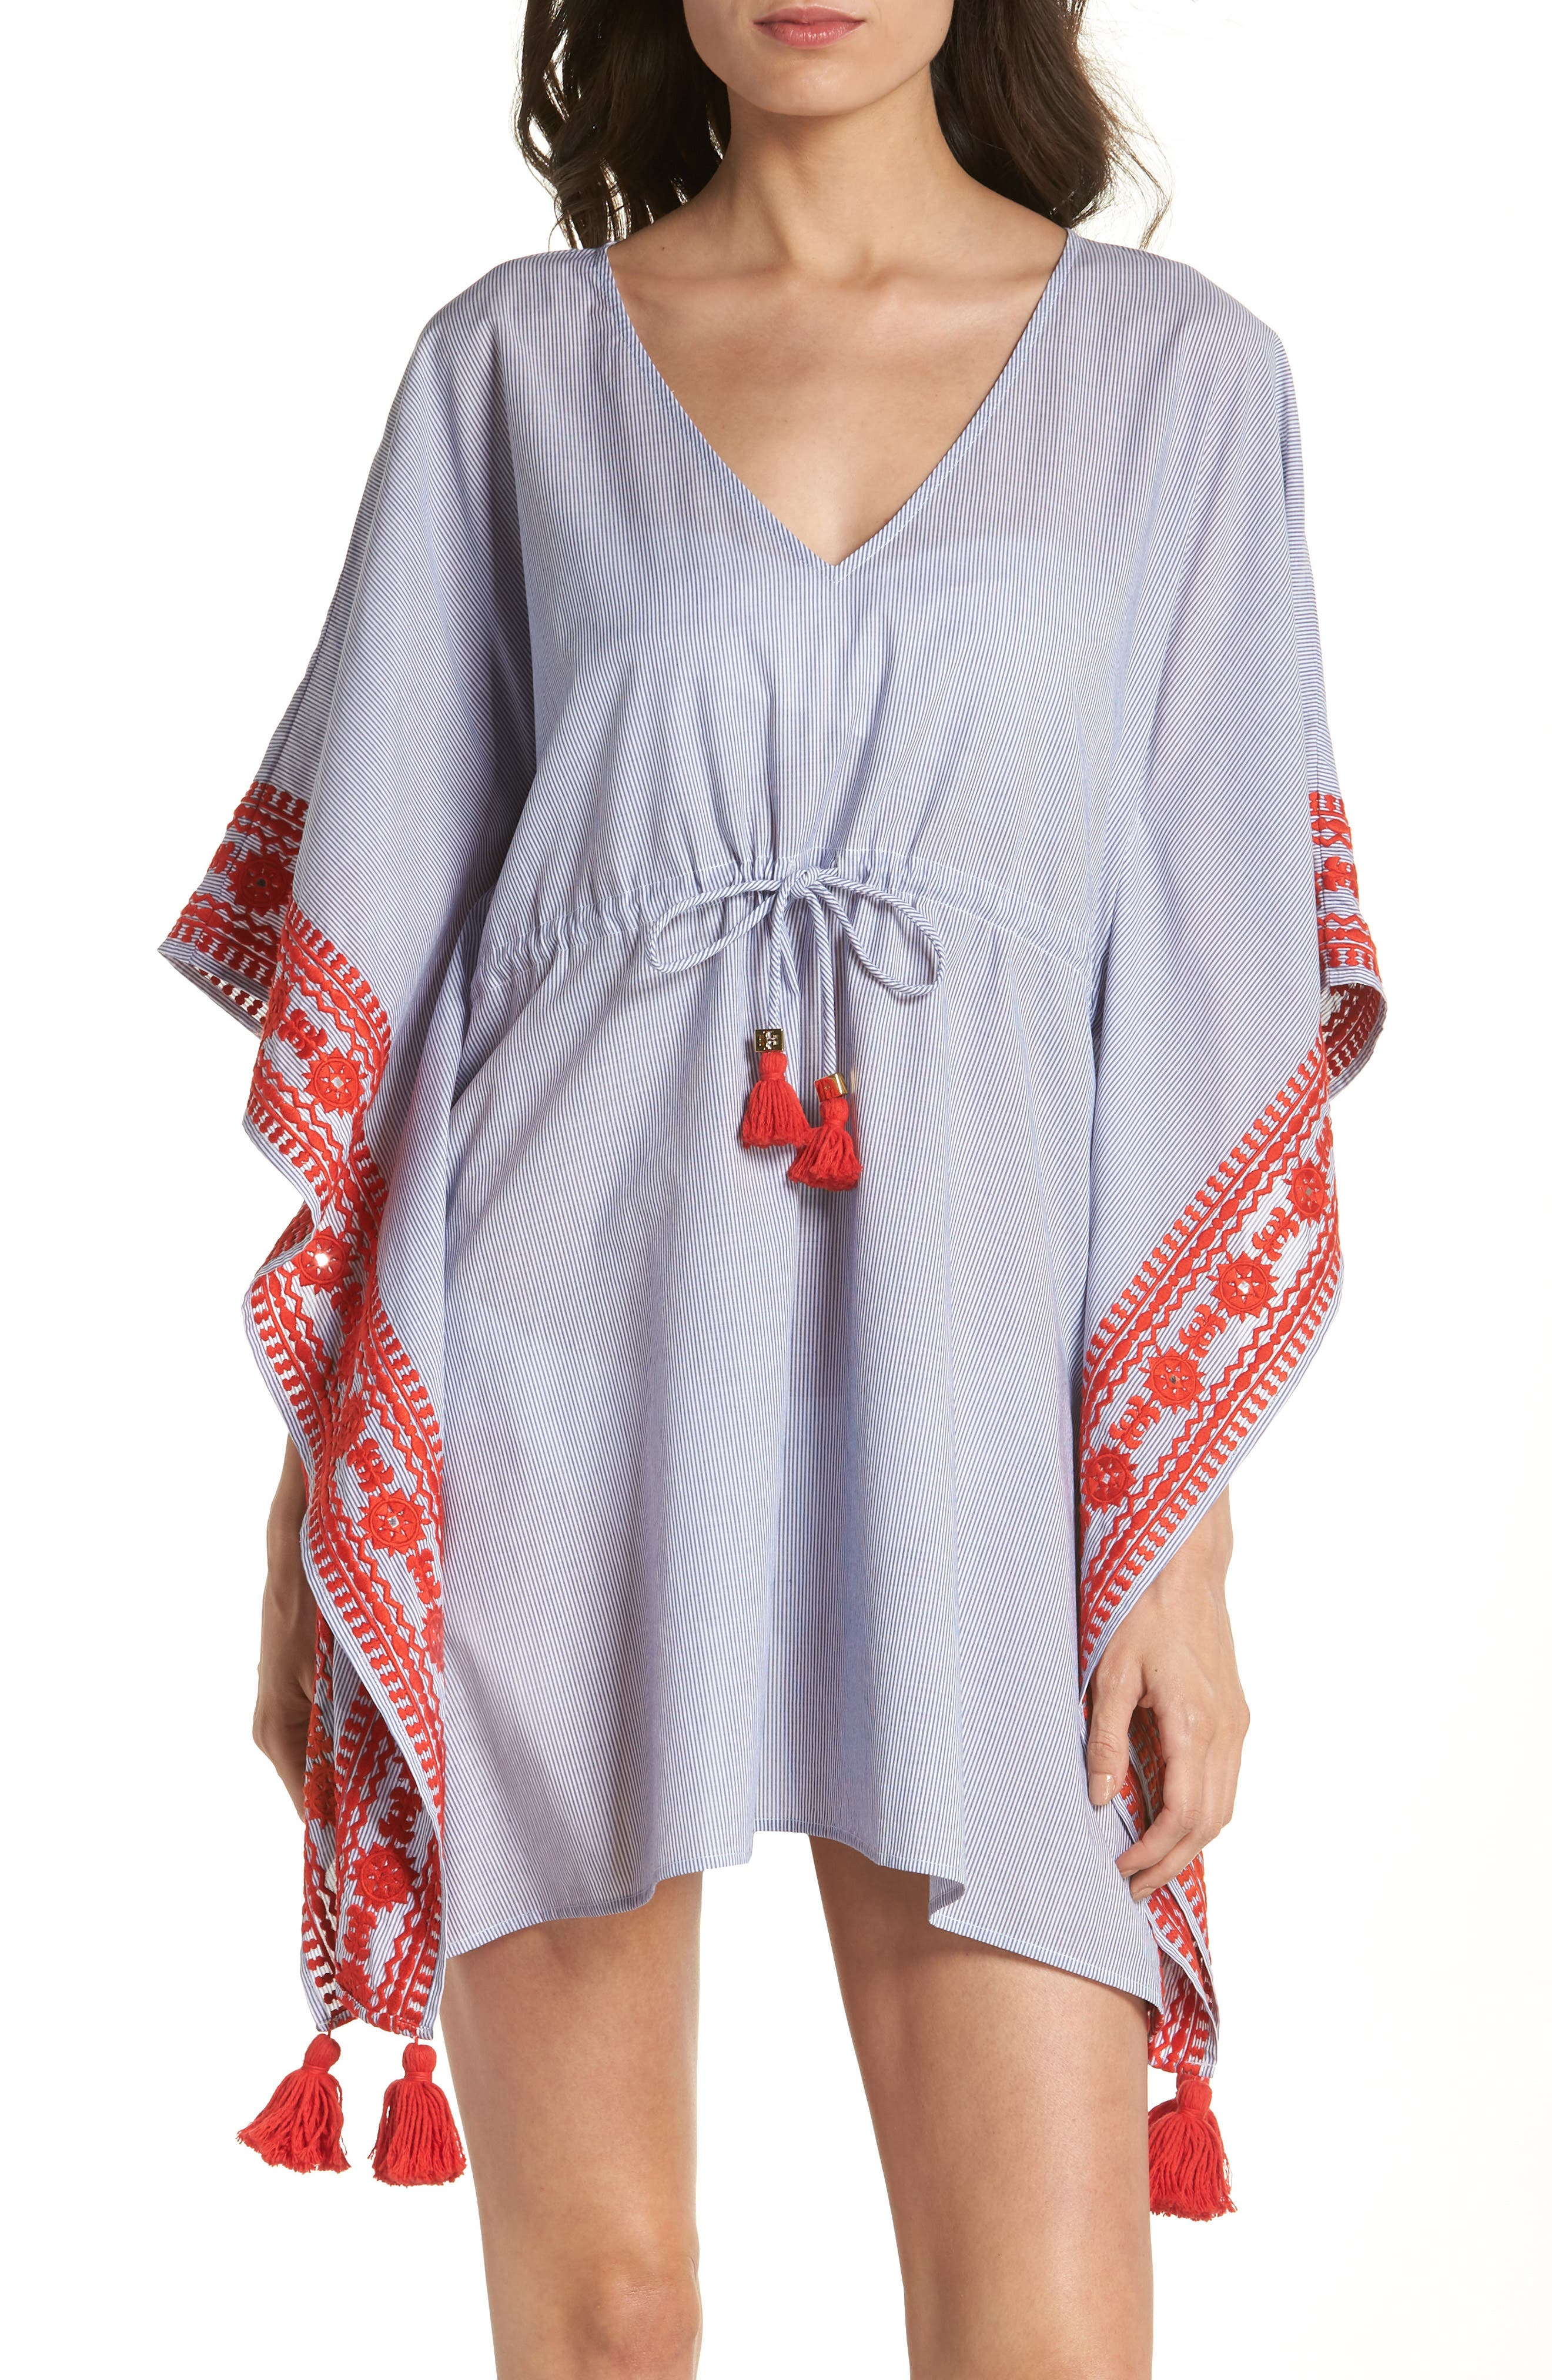 Tory Burch Ravena Cover-Up Caftan